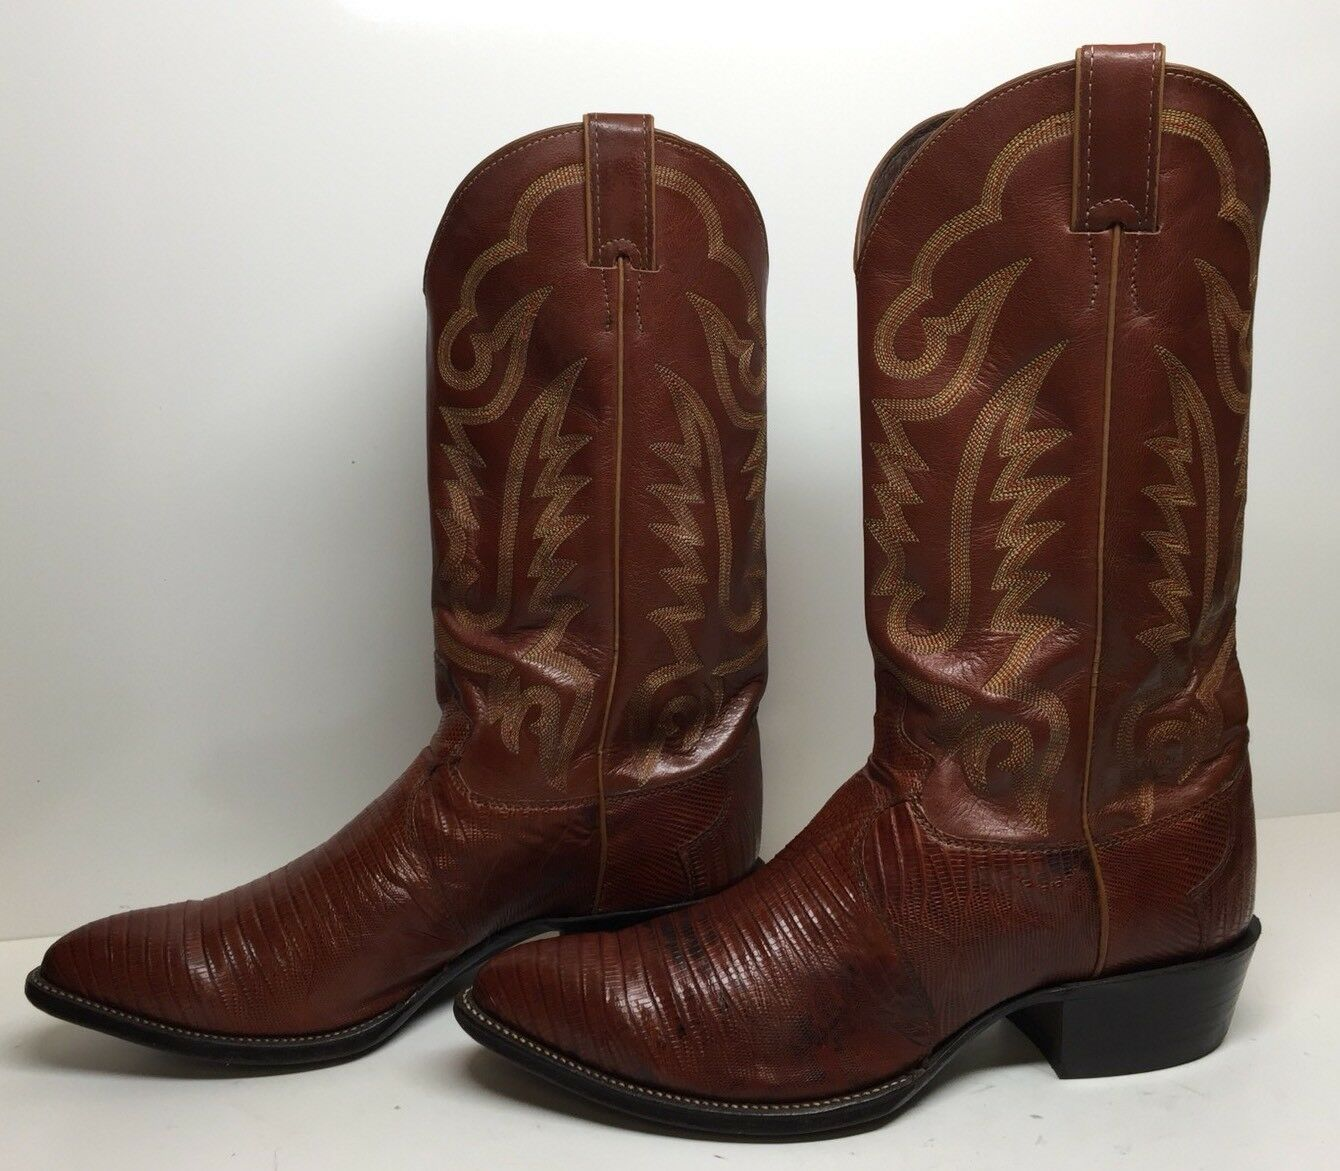 E MENS  JUSTIN  COWBOY LIZARD SKIN BROWN BOOTS SIZE 9.5 EE